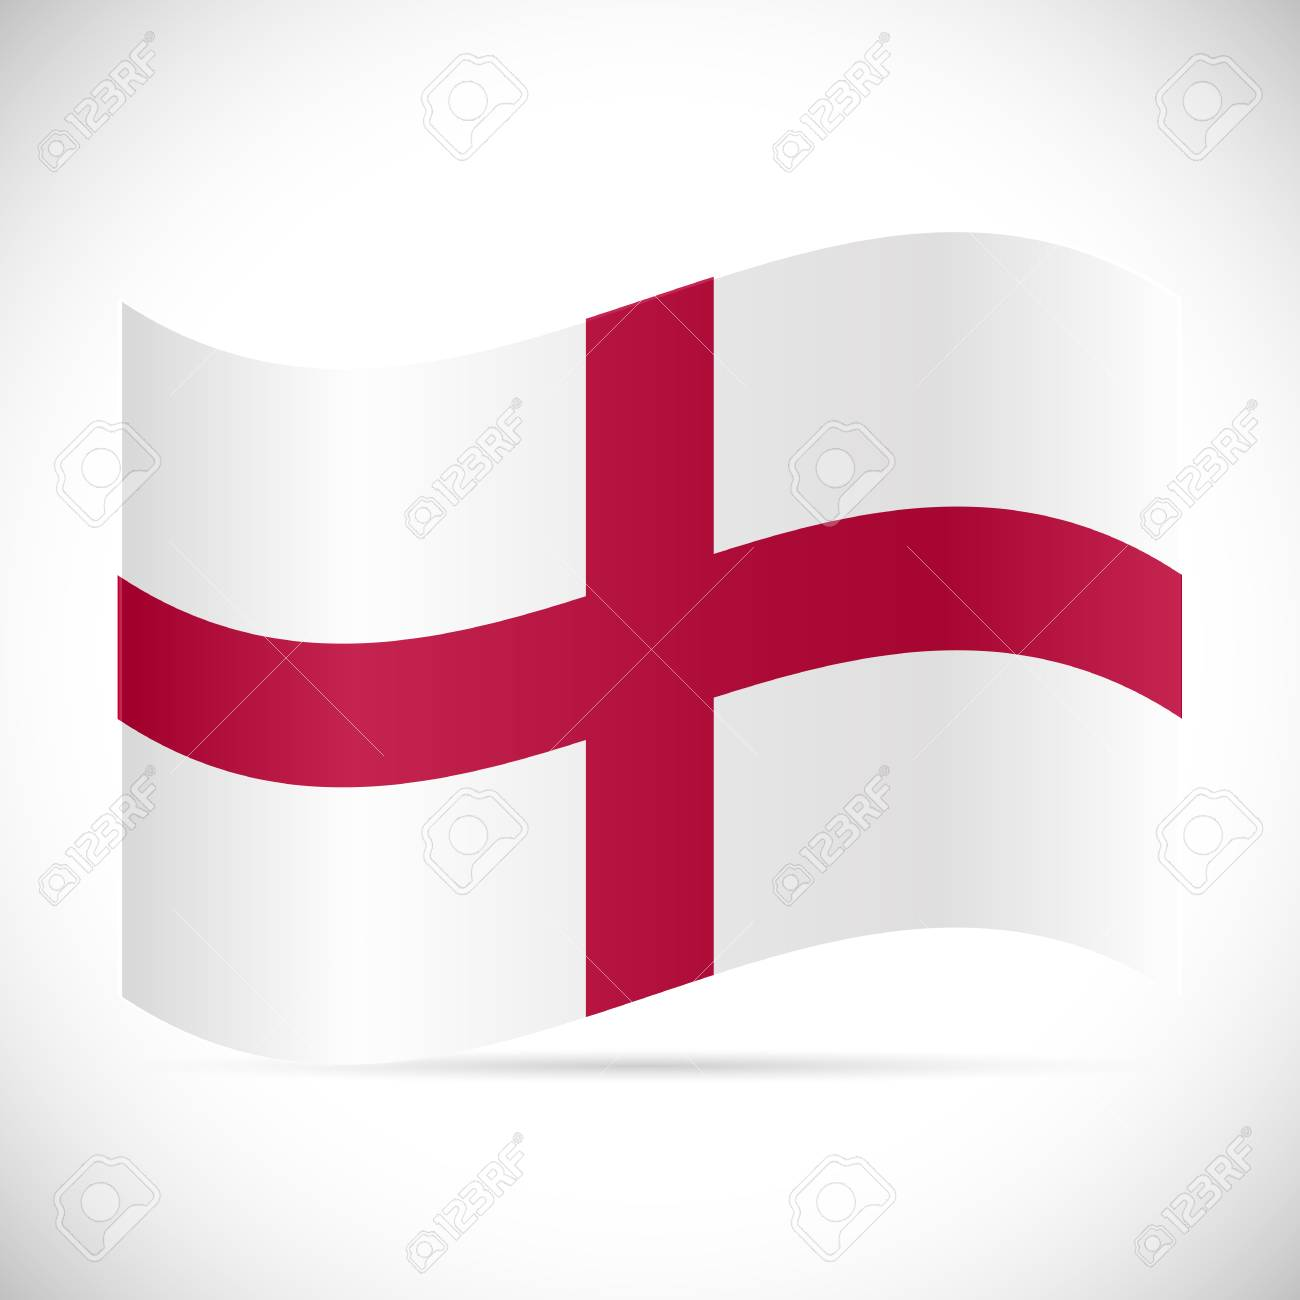 Illustration of the flag of England isolated on a white background. - 97016369